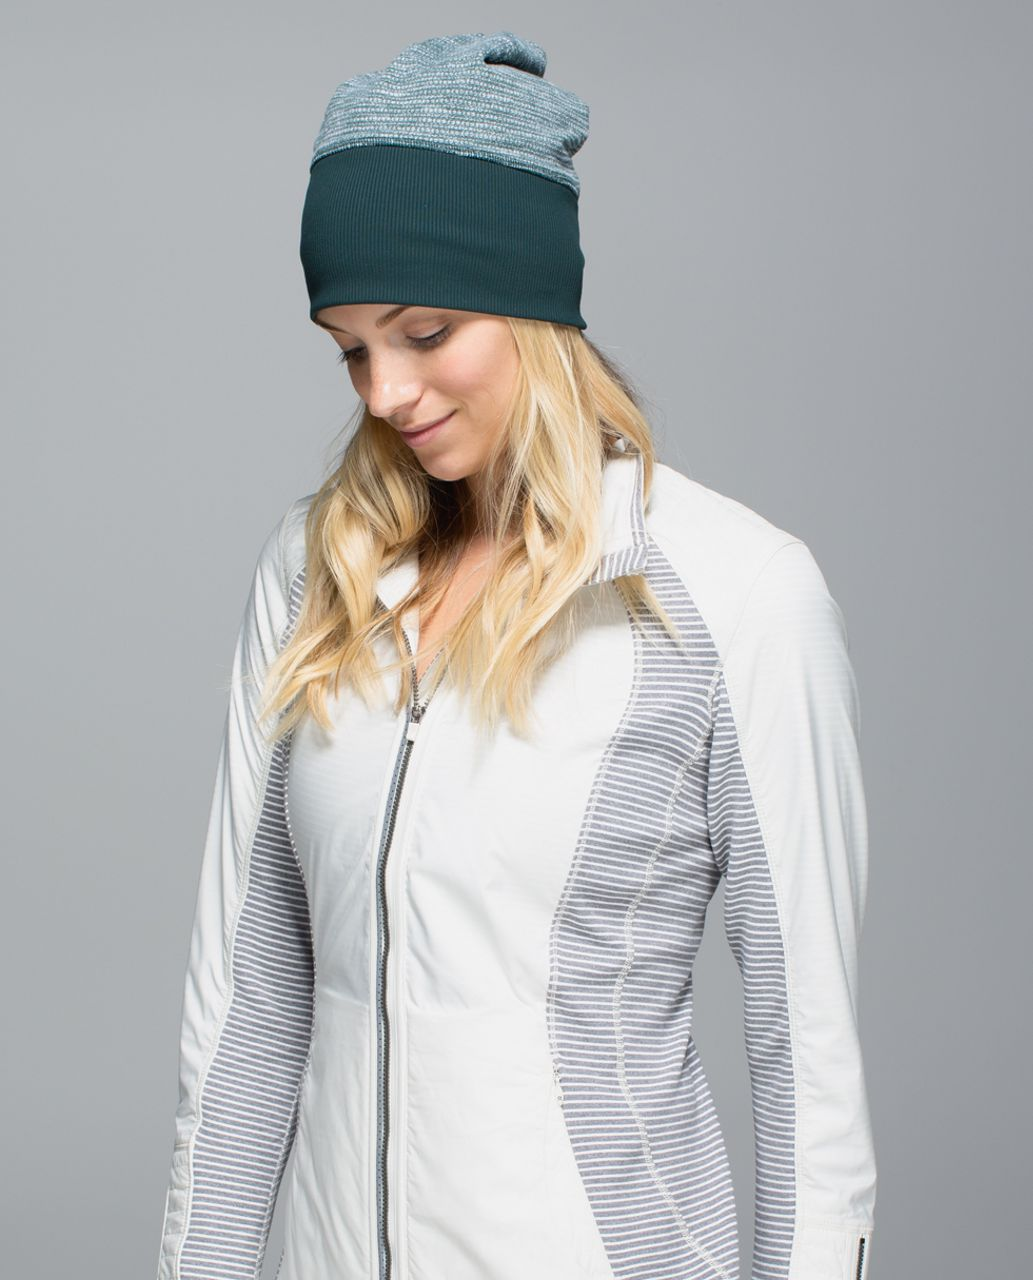 Lululemon Run With Me Toque - Fuel Green / Hyper Stripe Heathered Fuel Green Toothpaste